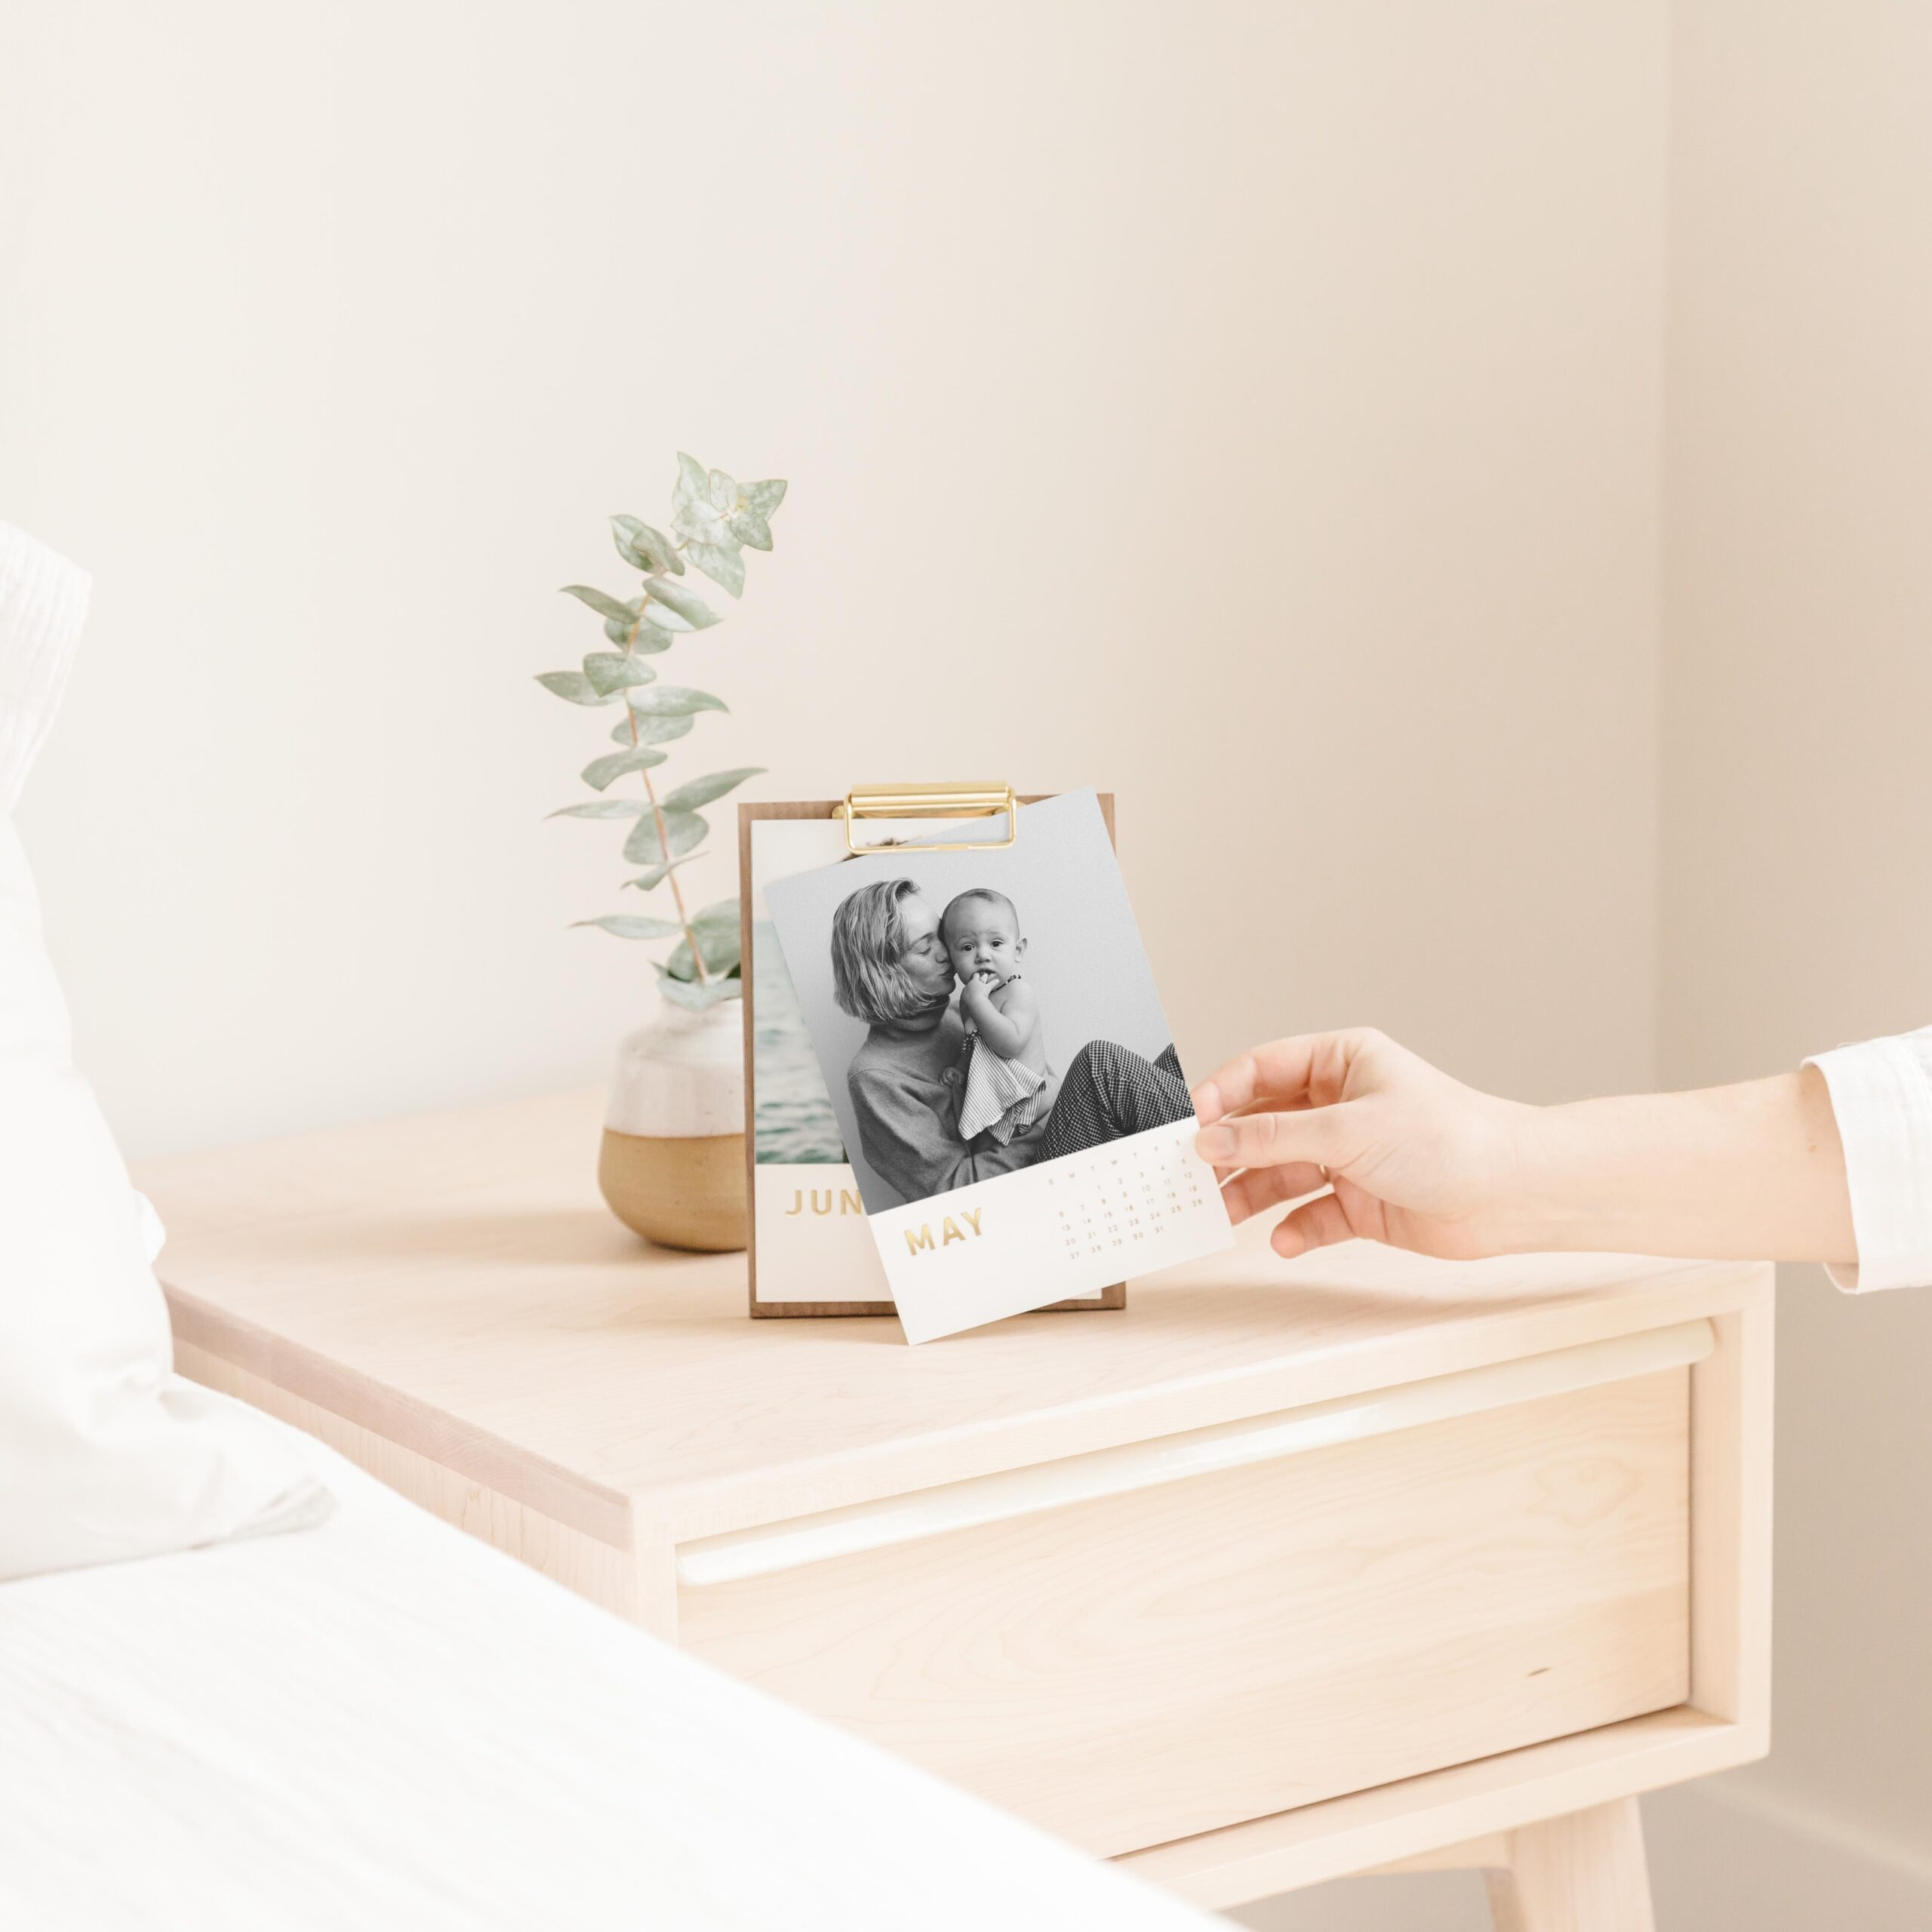 20190321-mothers-day-lifestyle-walnut-calendar-on-nightstand-hand-43